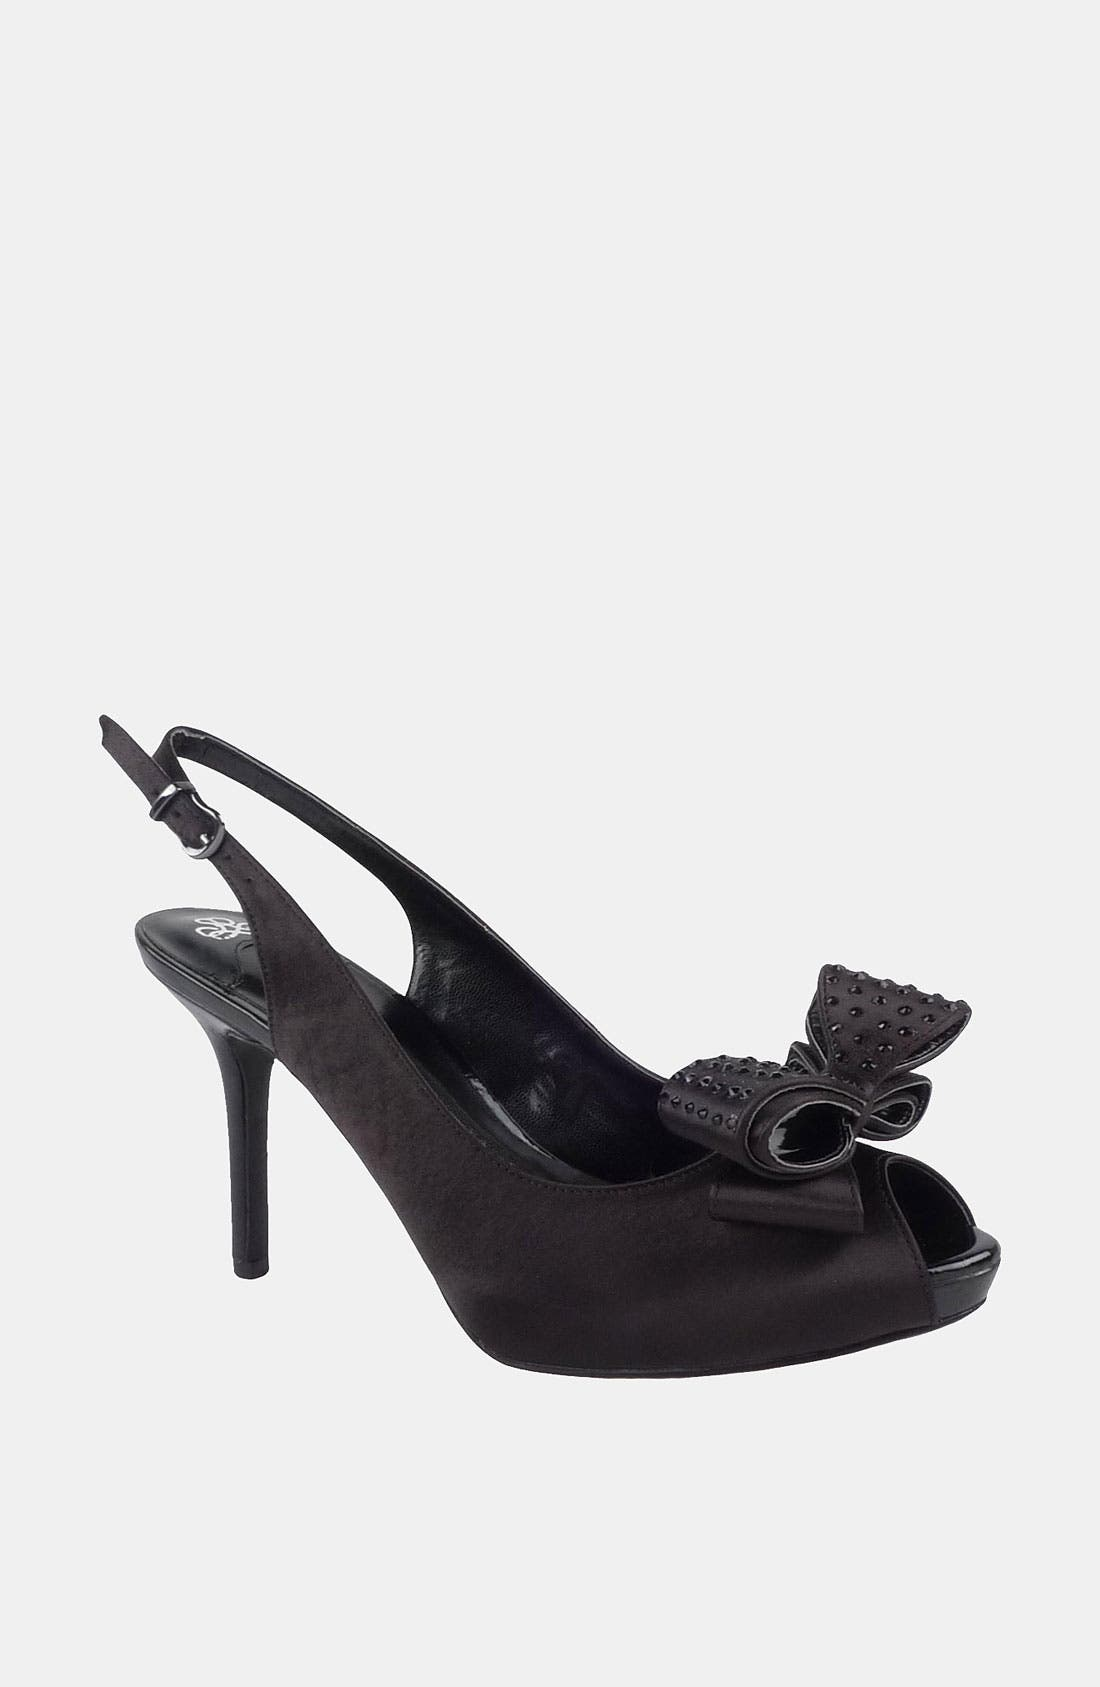 Alternate Image 1 Selected - J. Reneé 'Queeni' Platform Pump